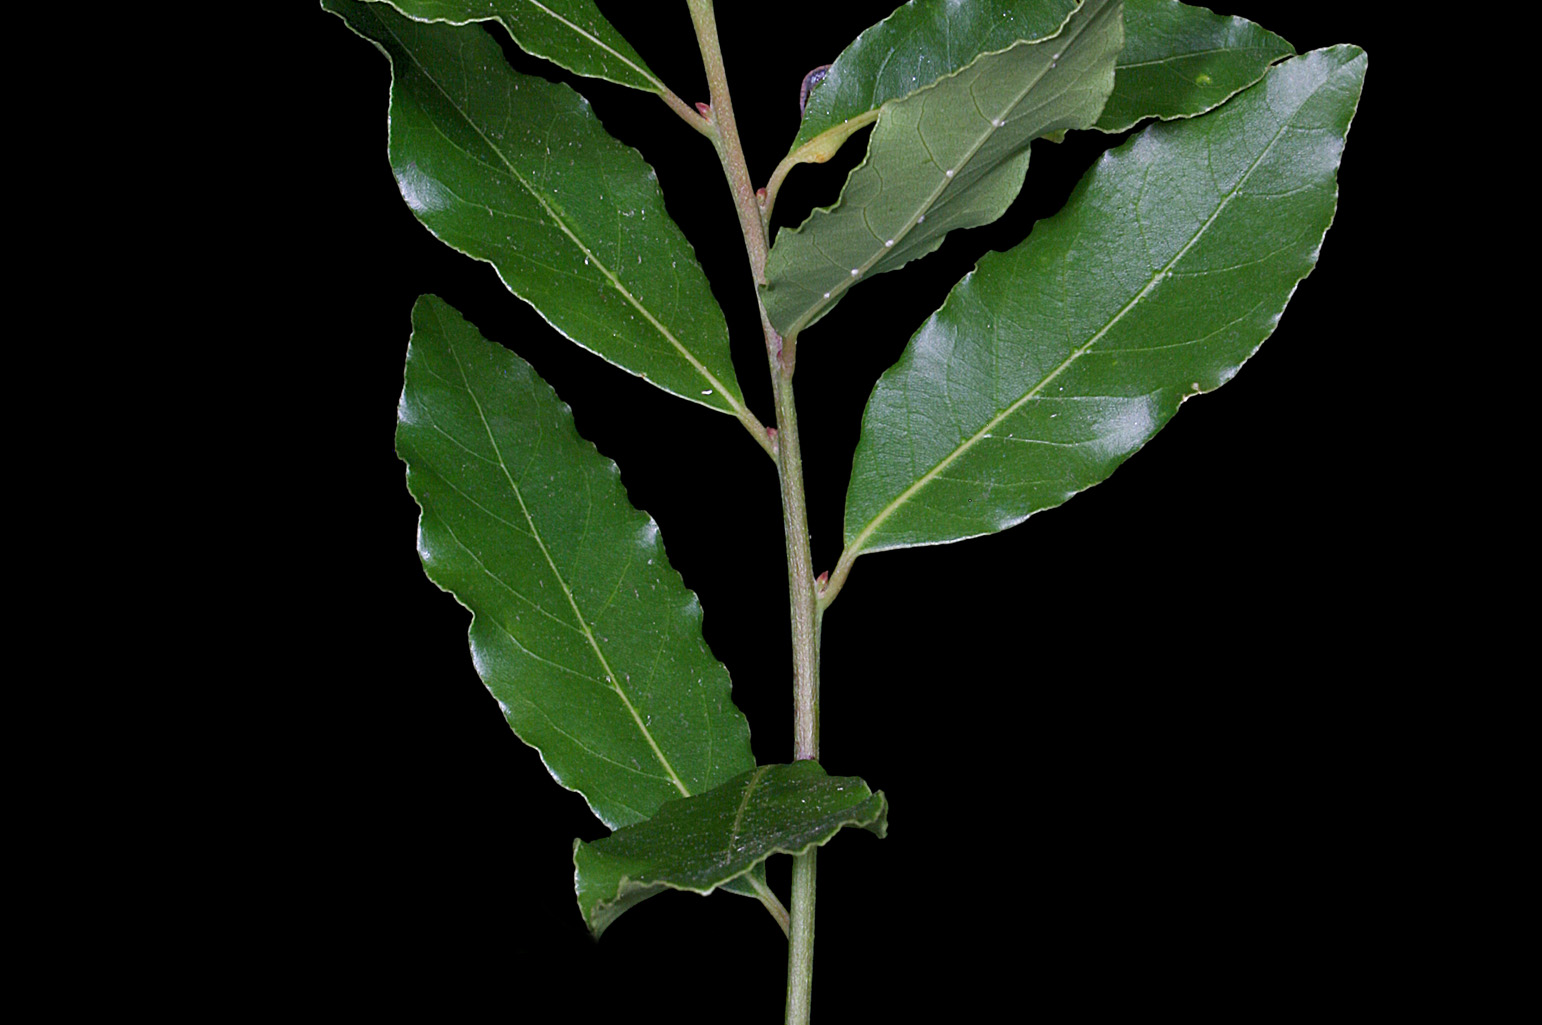 Branch with elliptic, leathery, glossy leaves on the upper side, with entire and somewhat undulate margins; they release a very pleasant, aromatic smell when crushed